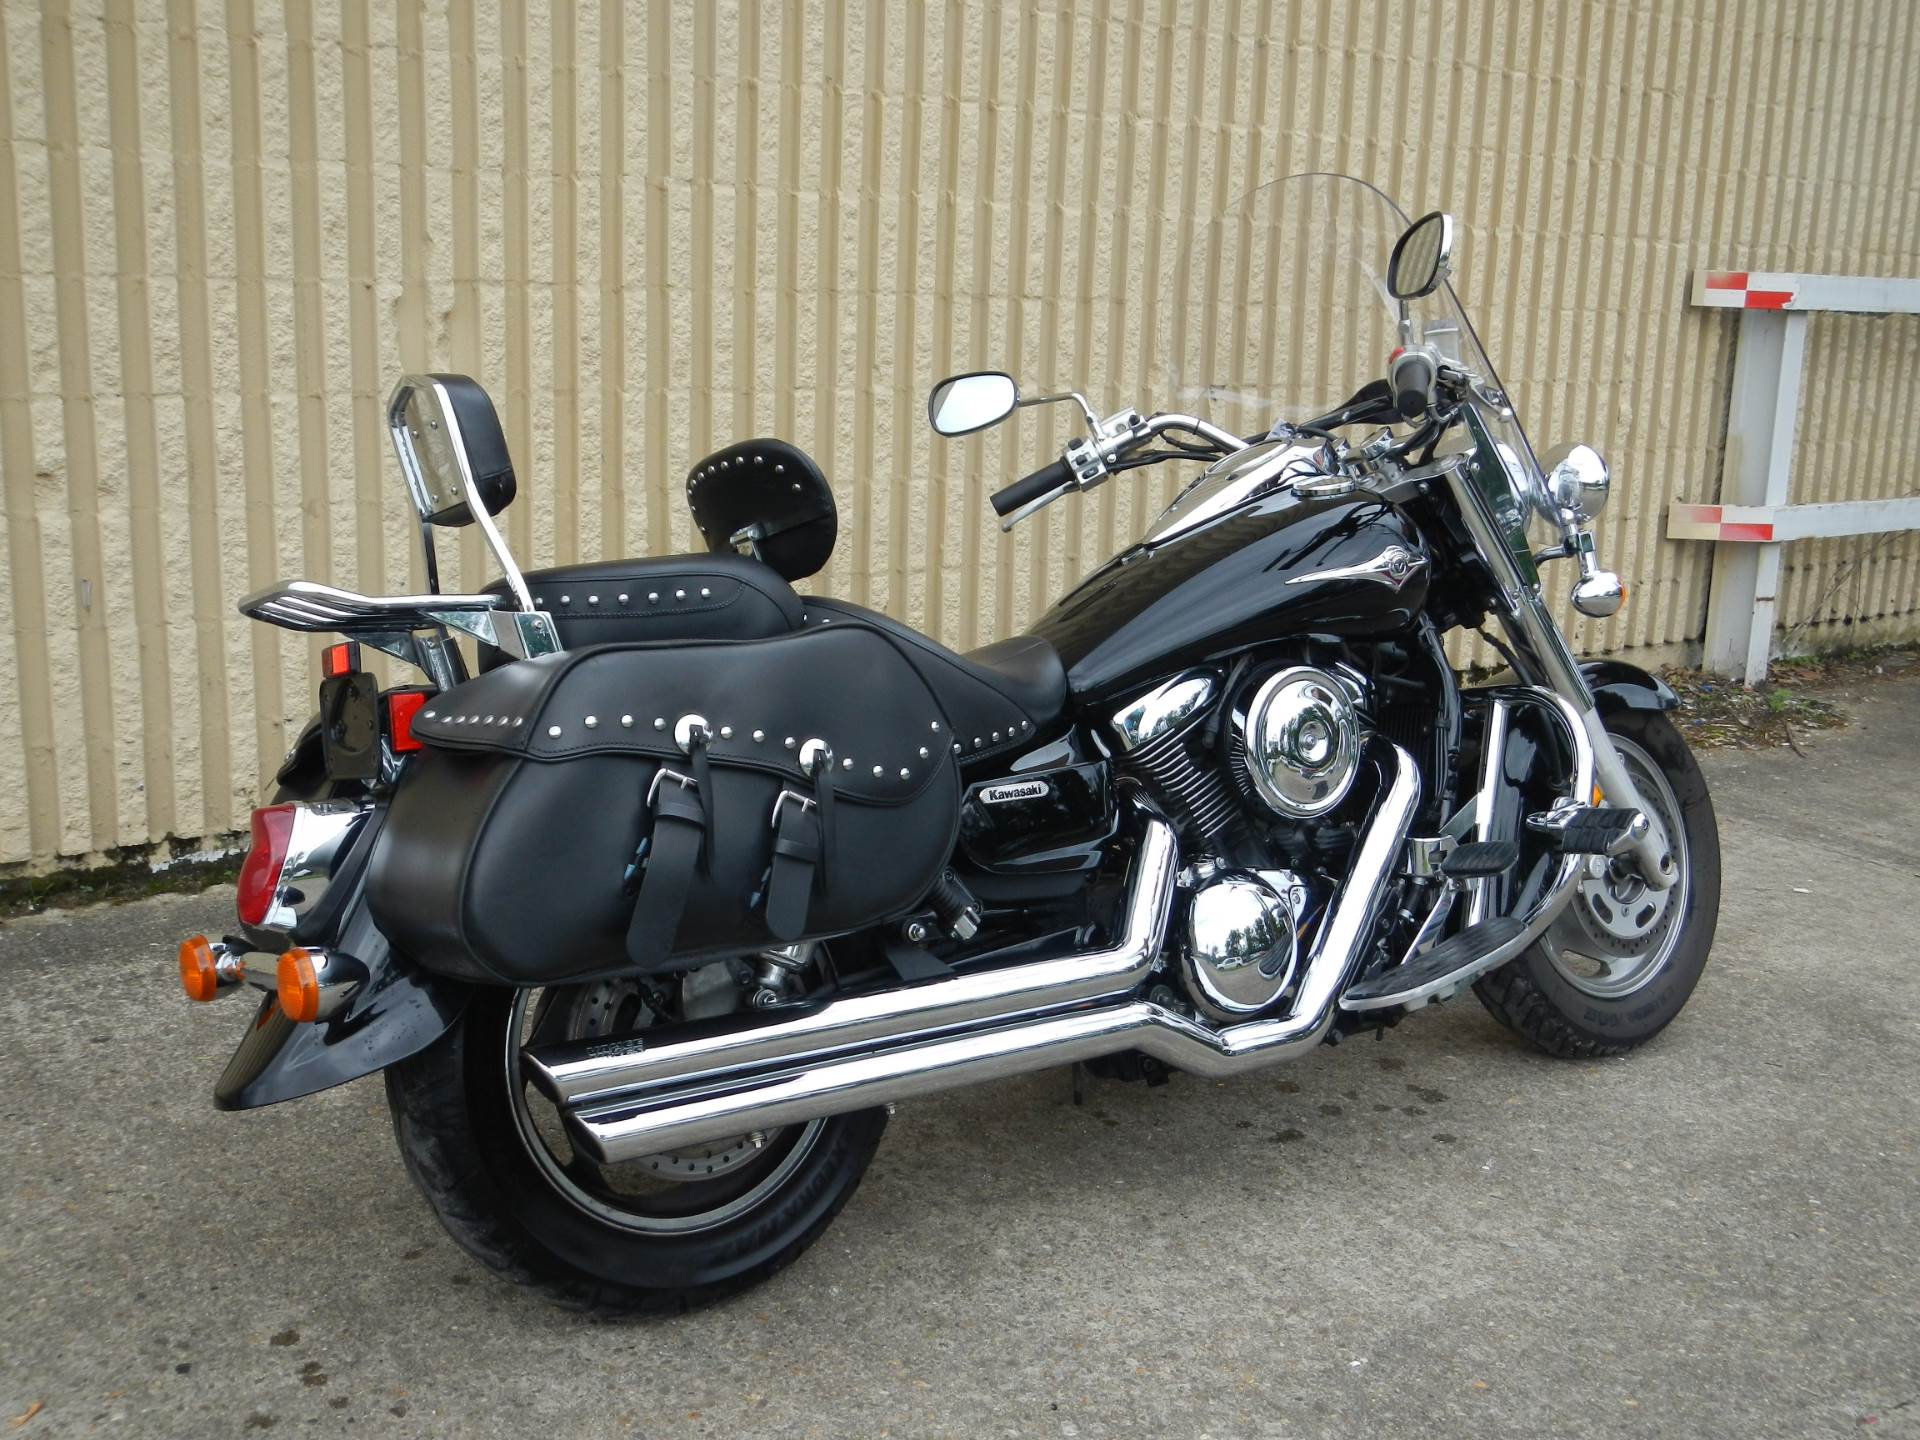 2007 Kawasaki Vulcan® 1600 Classic in Nutter Fort, West Virginia